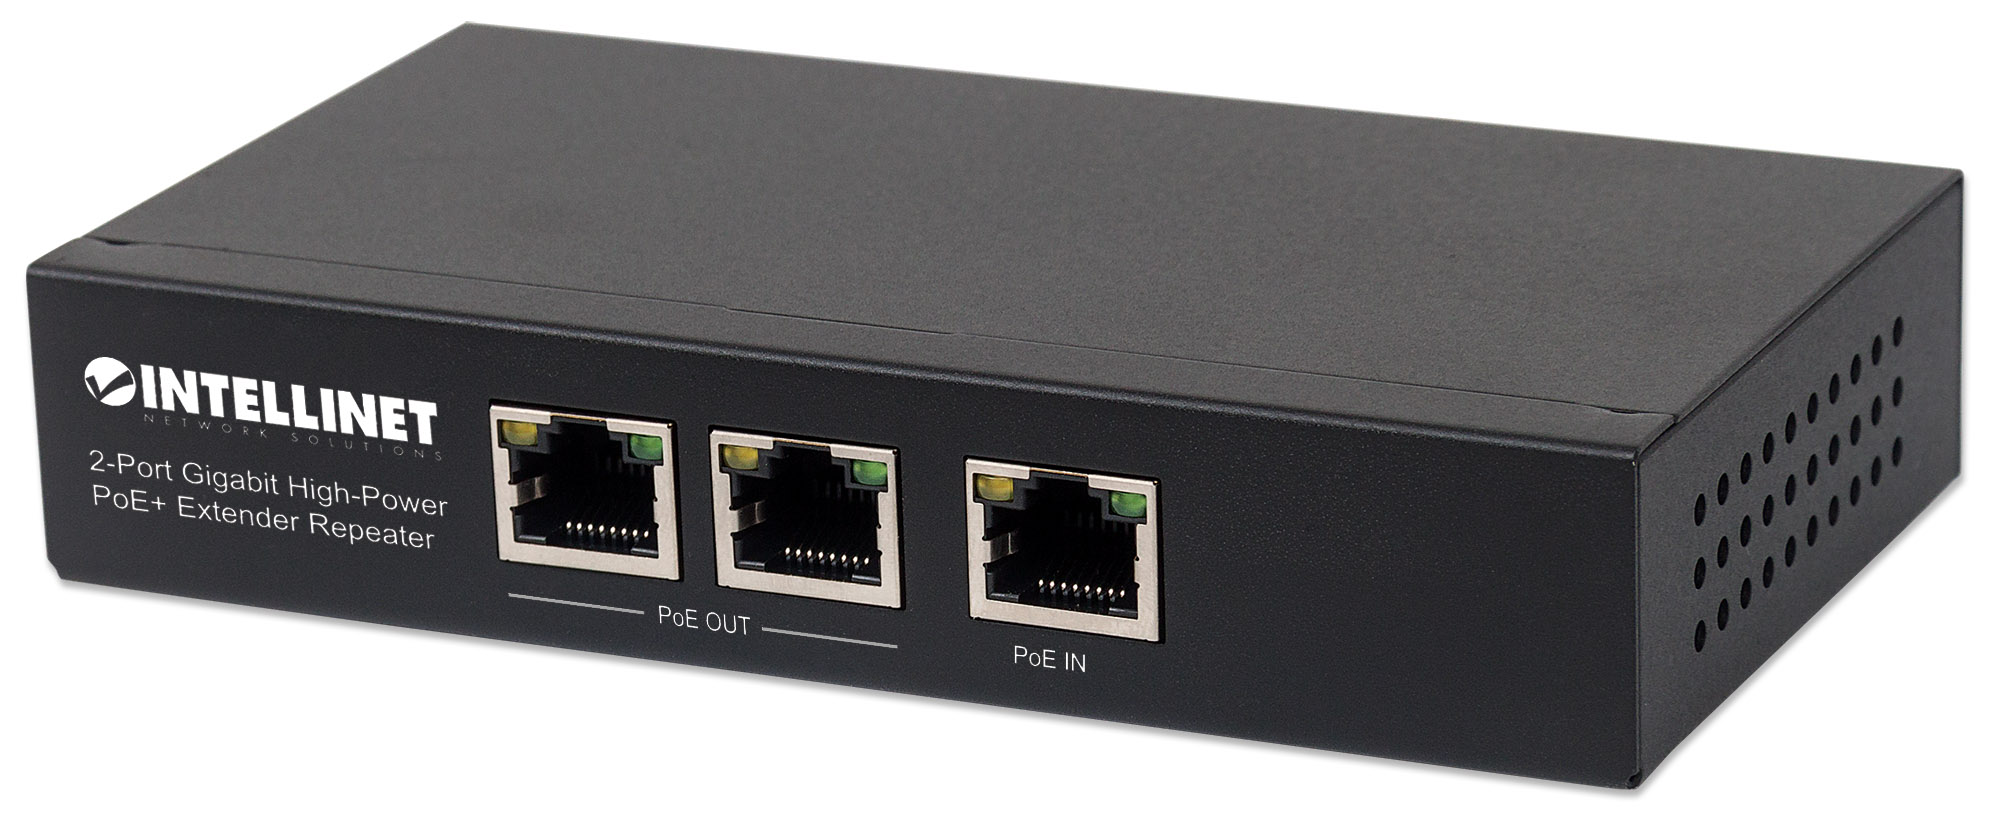 2-Port Gigabit High-Power PoE+ Extender Repeater